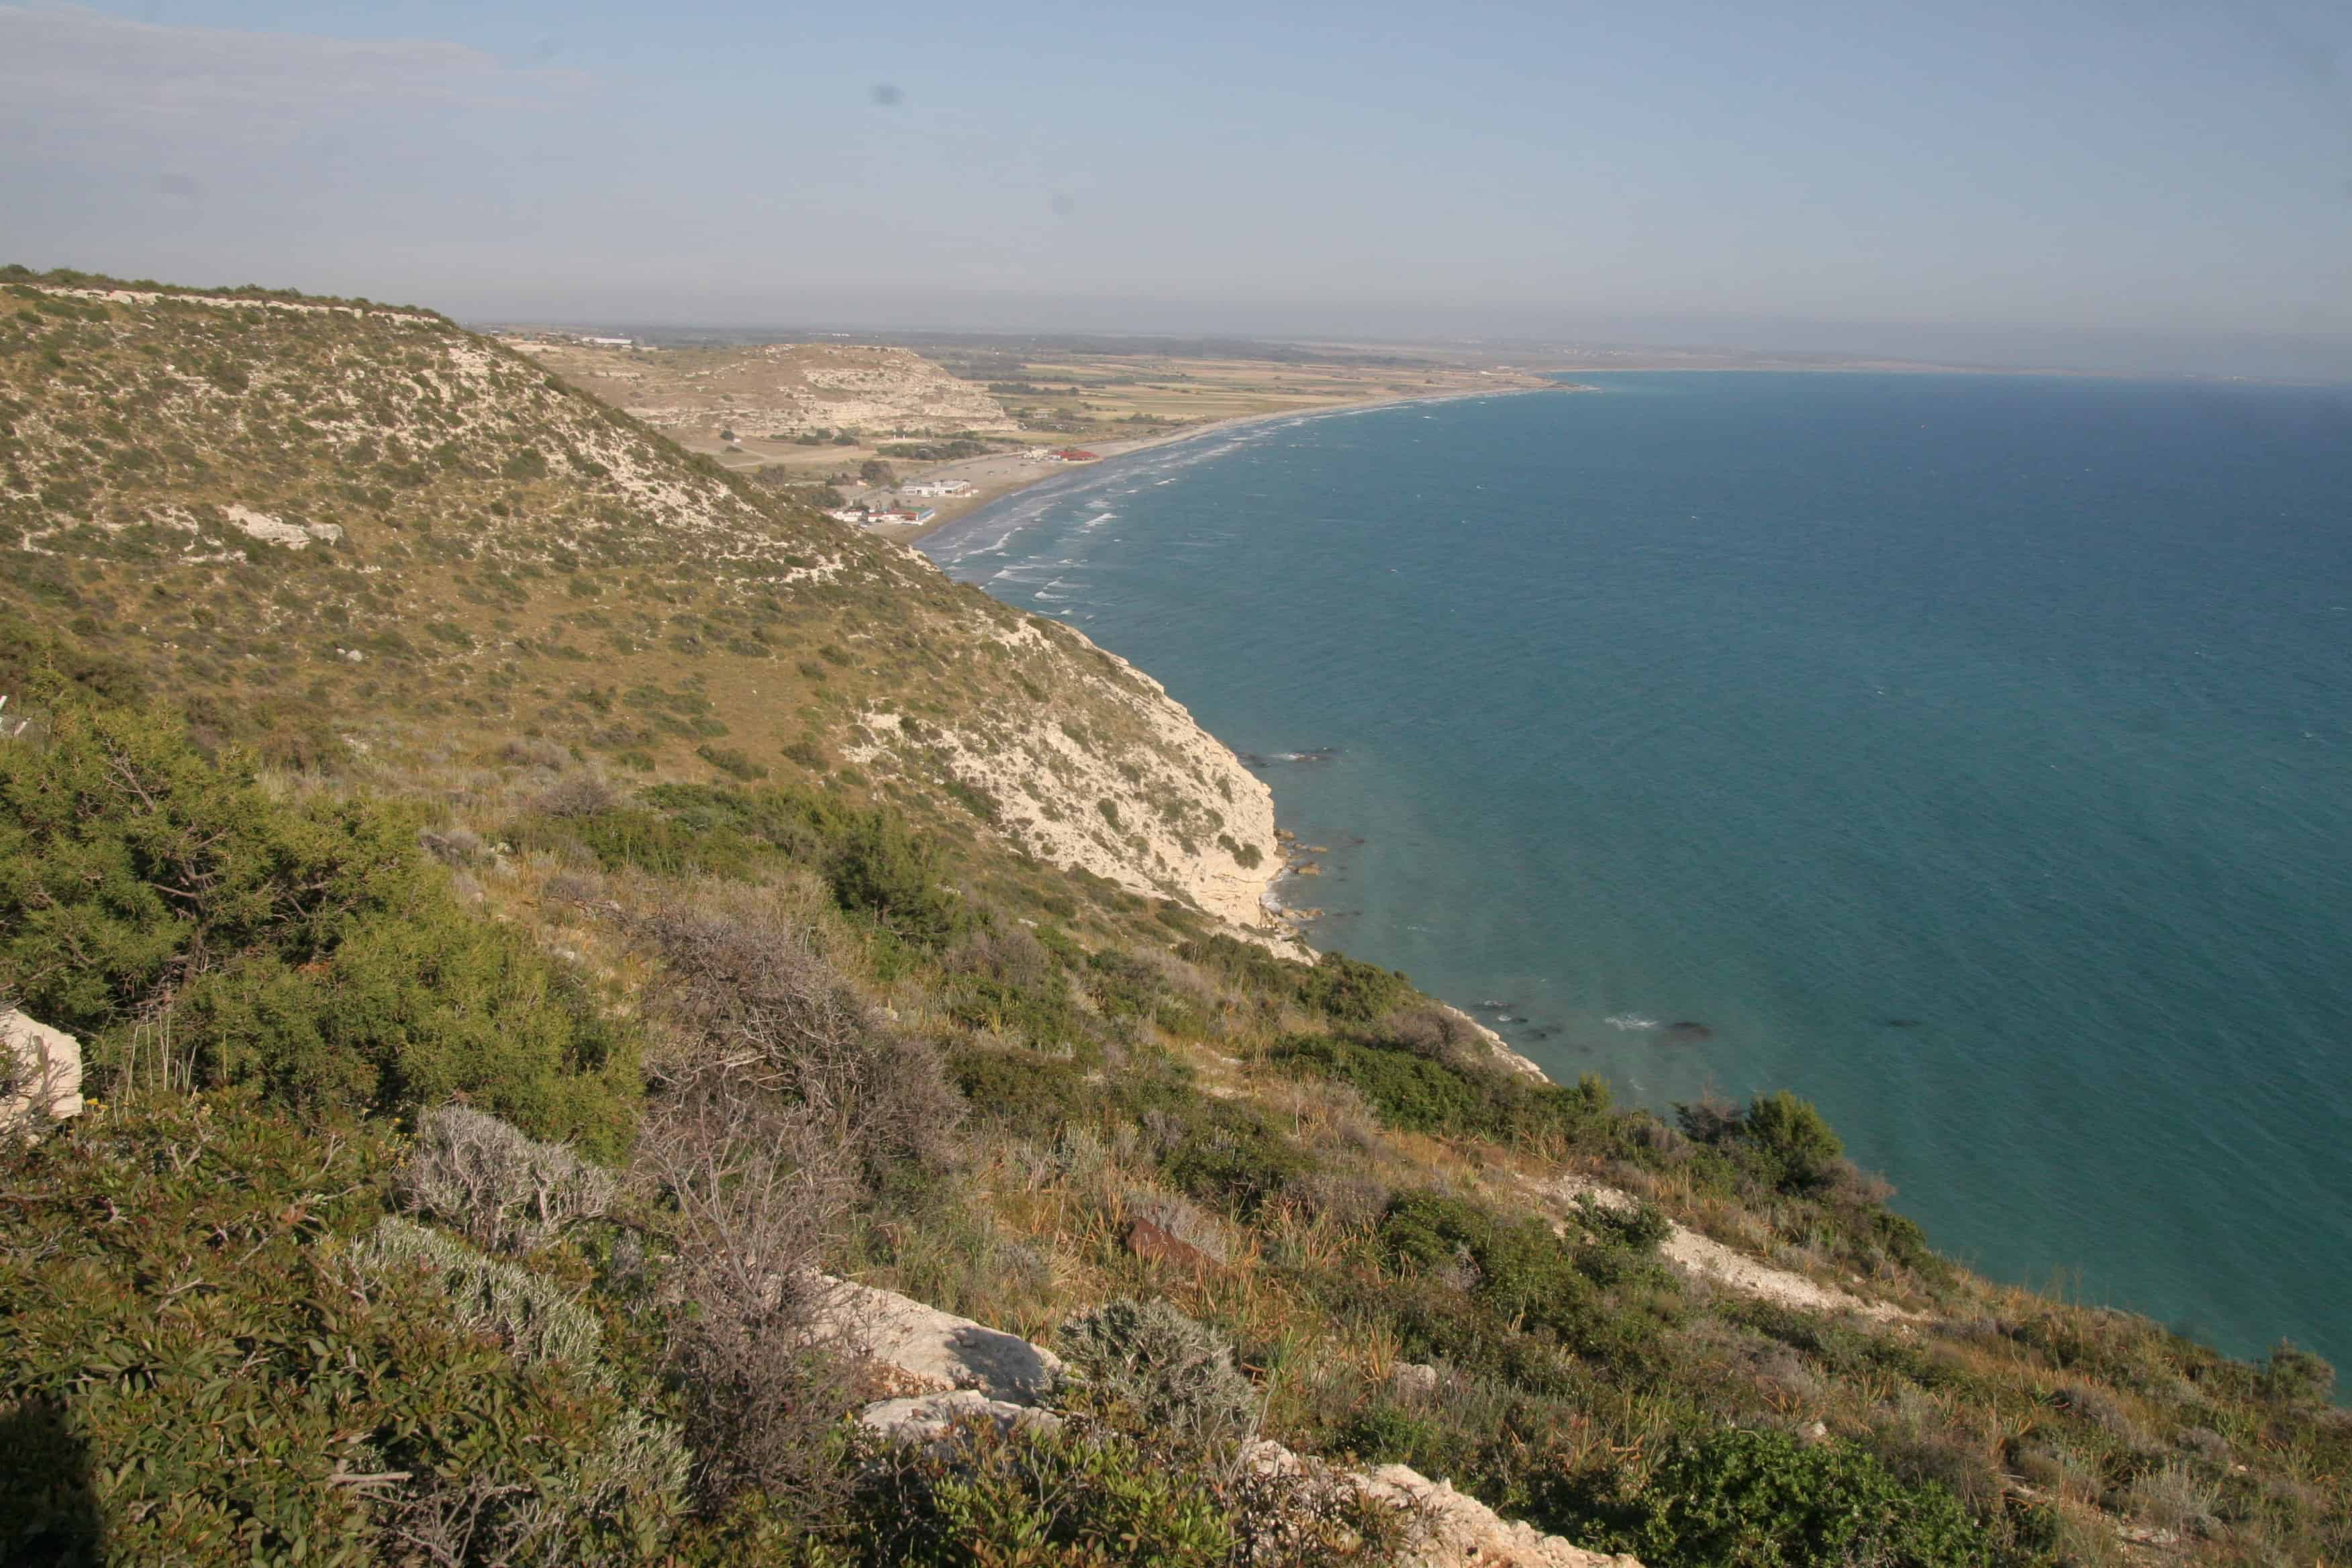 View from the cliffs near Episkopi, in the WSBA, towards the low Akrotiri Peninsula; Copyright: Dr Mike Pienkowski